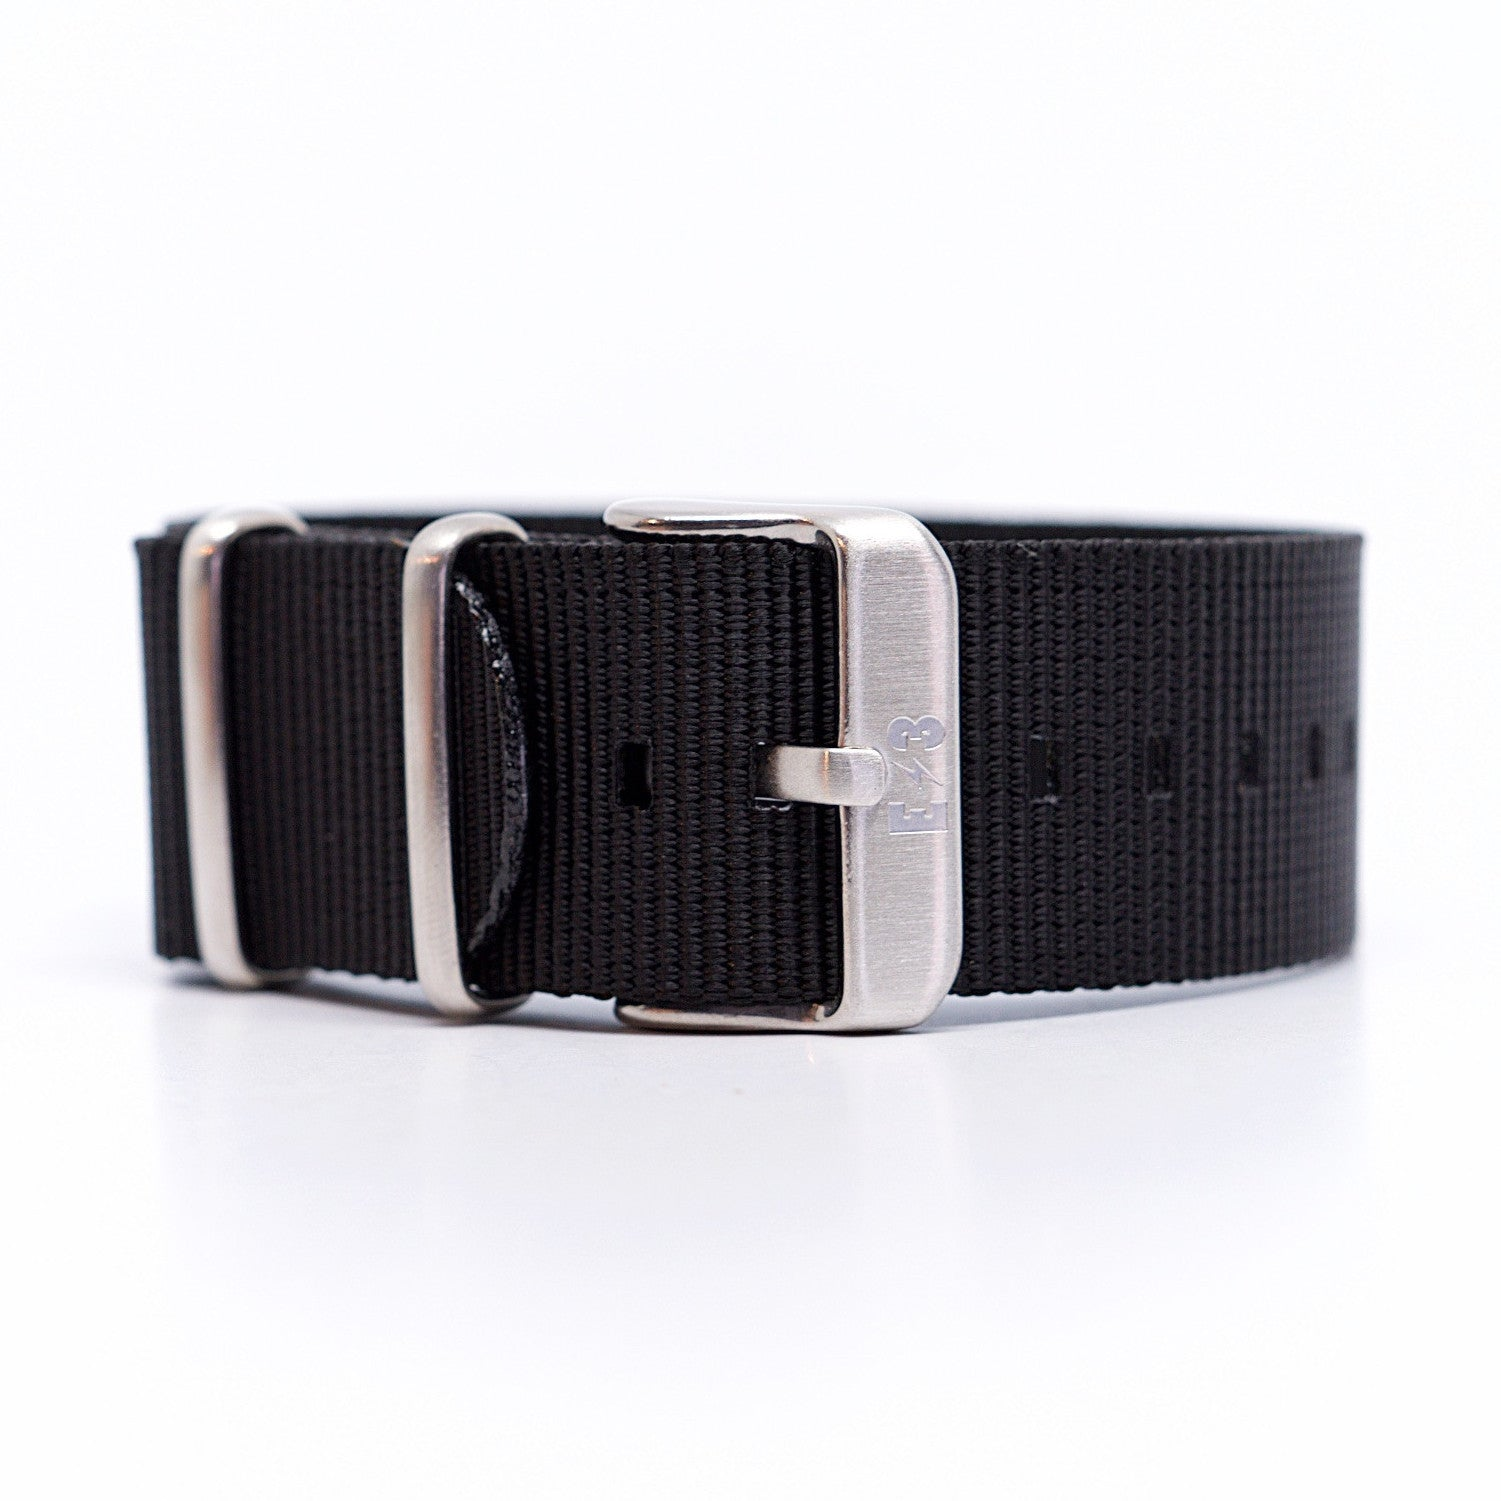 E3 Black Ballistic Nylon 22mm Military Watch Strap: Zulu / Nato / Military